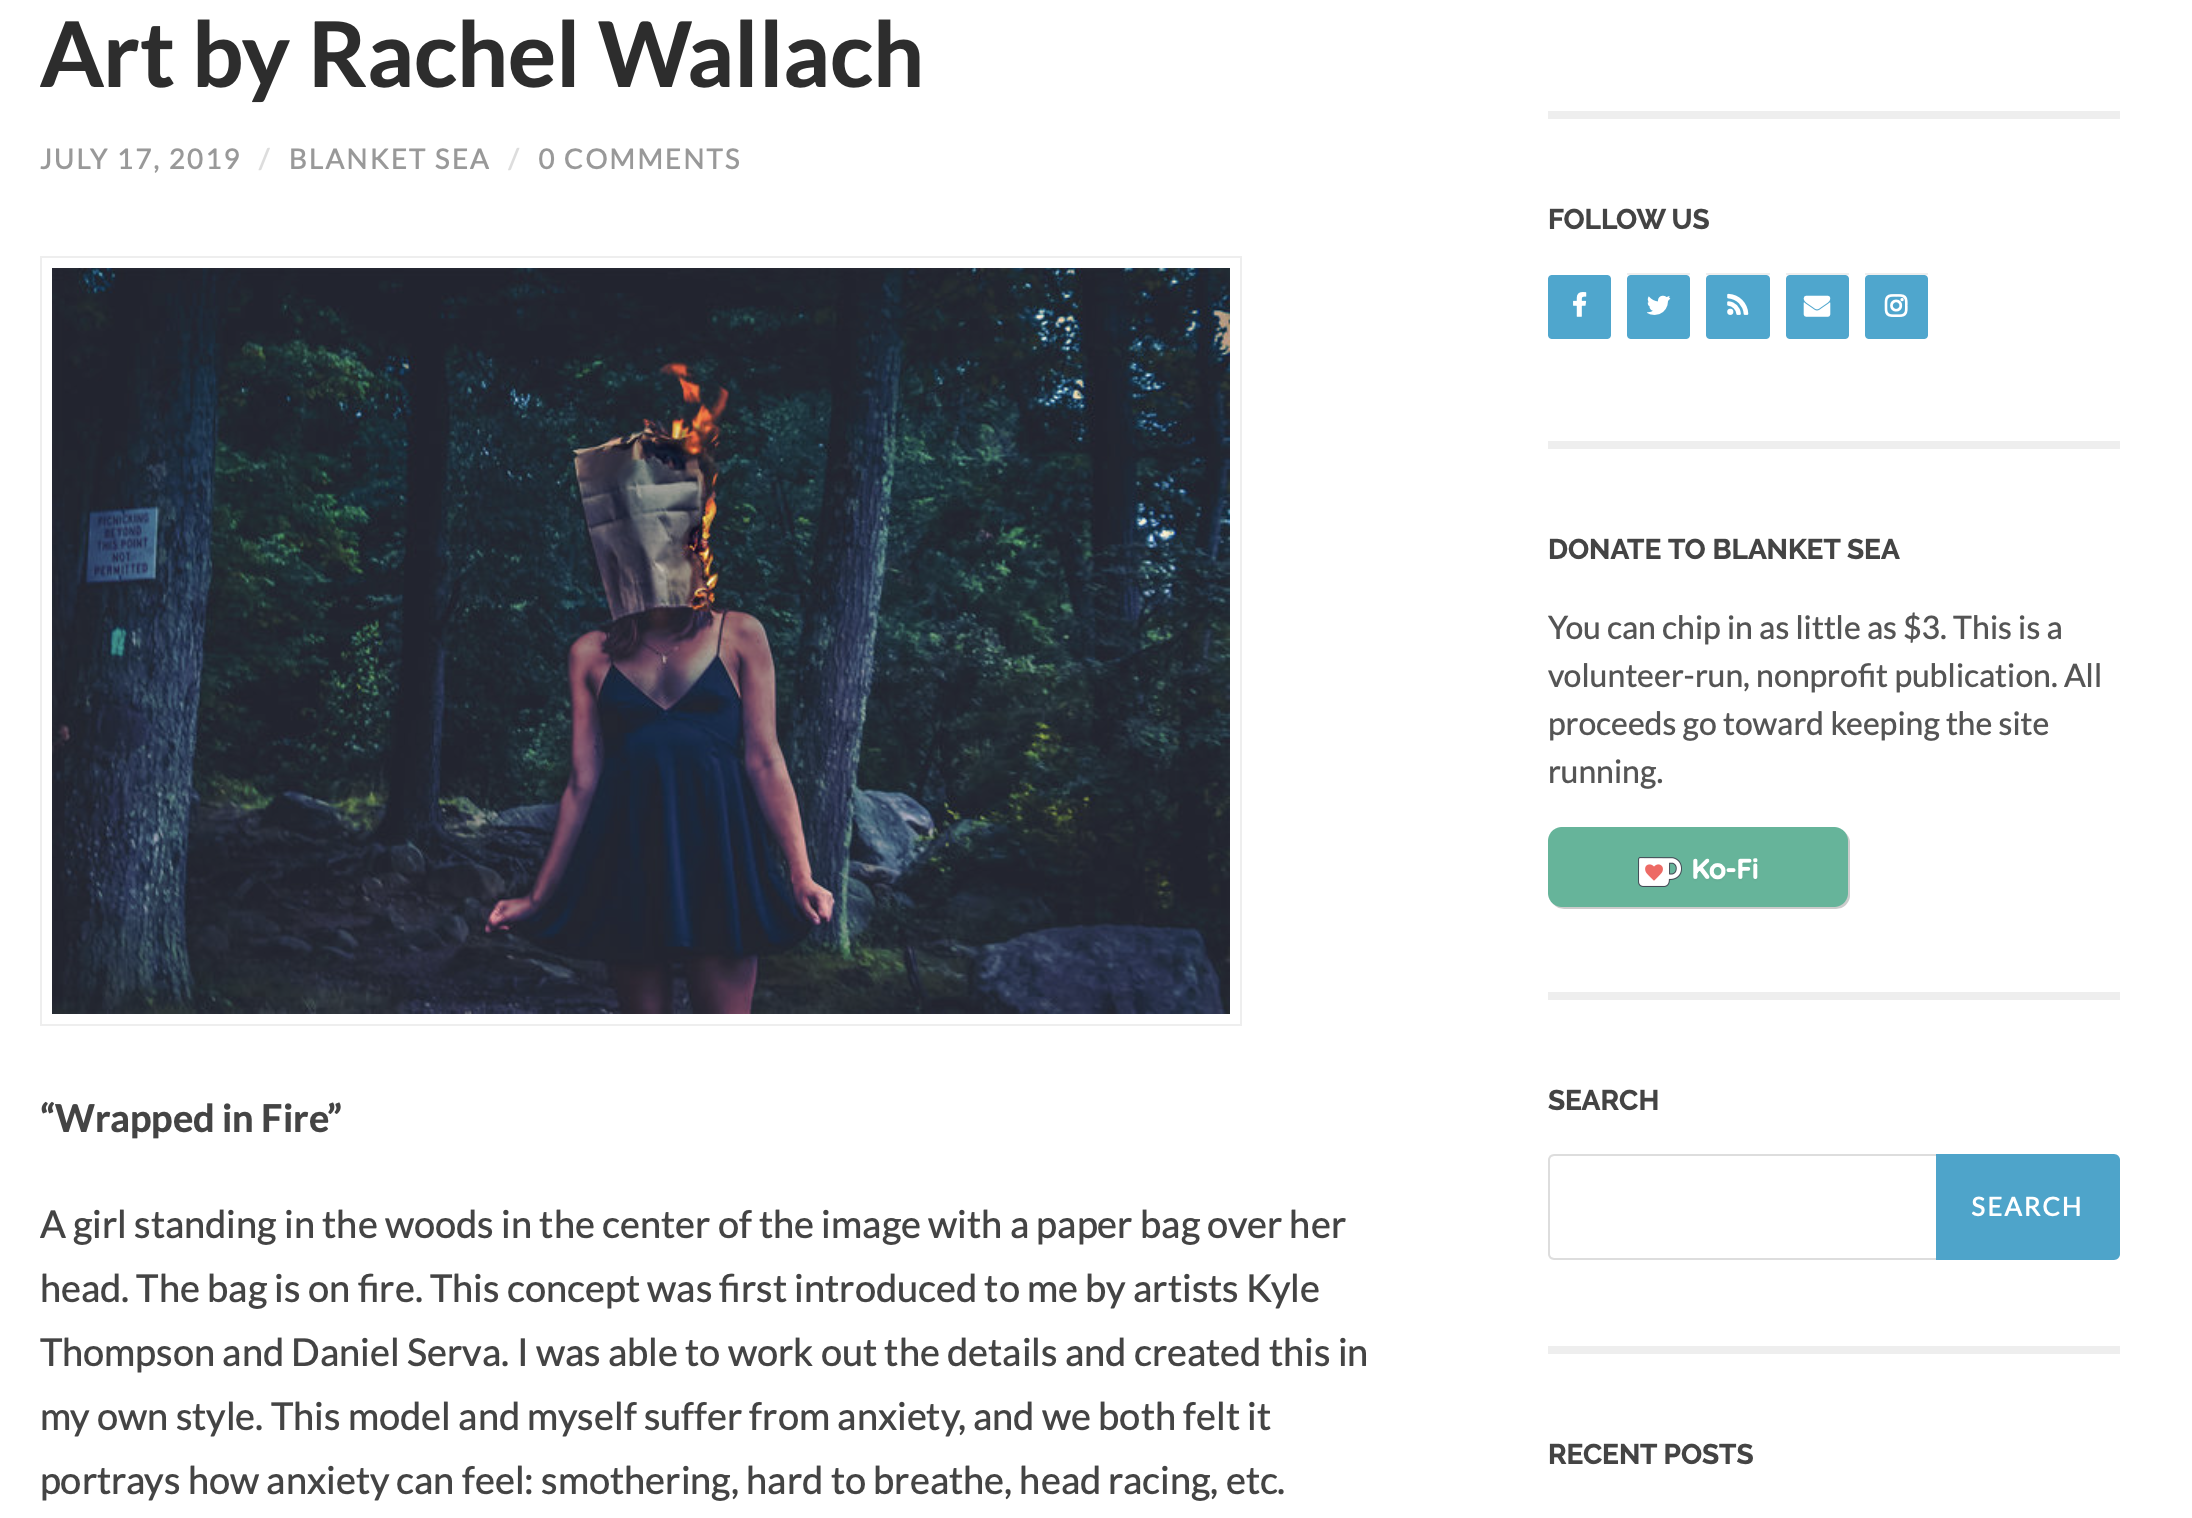 Artwork Featured in Blanket Sea Magazine - Article about Rachel's artwork in Blanket Sea Magazine, July 2019Blanket Sea Magazine is an arts & literary magazine dedicated to showcasing the work of artists and writers living with chronic illness, mental illness, and disability.